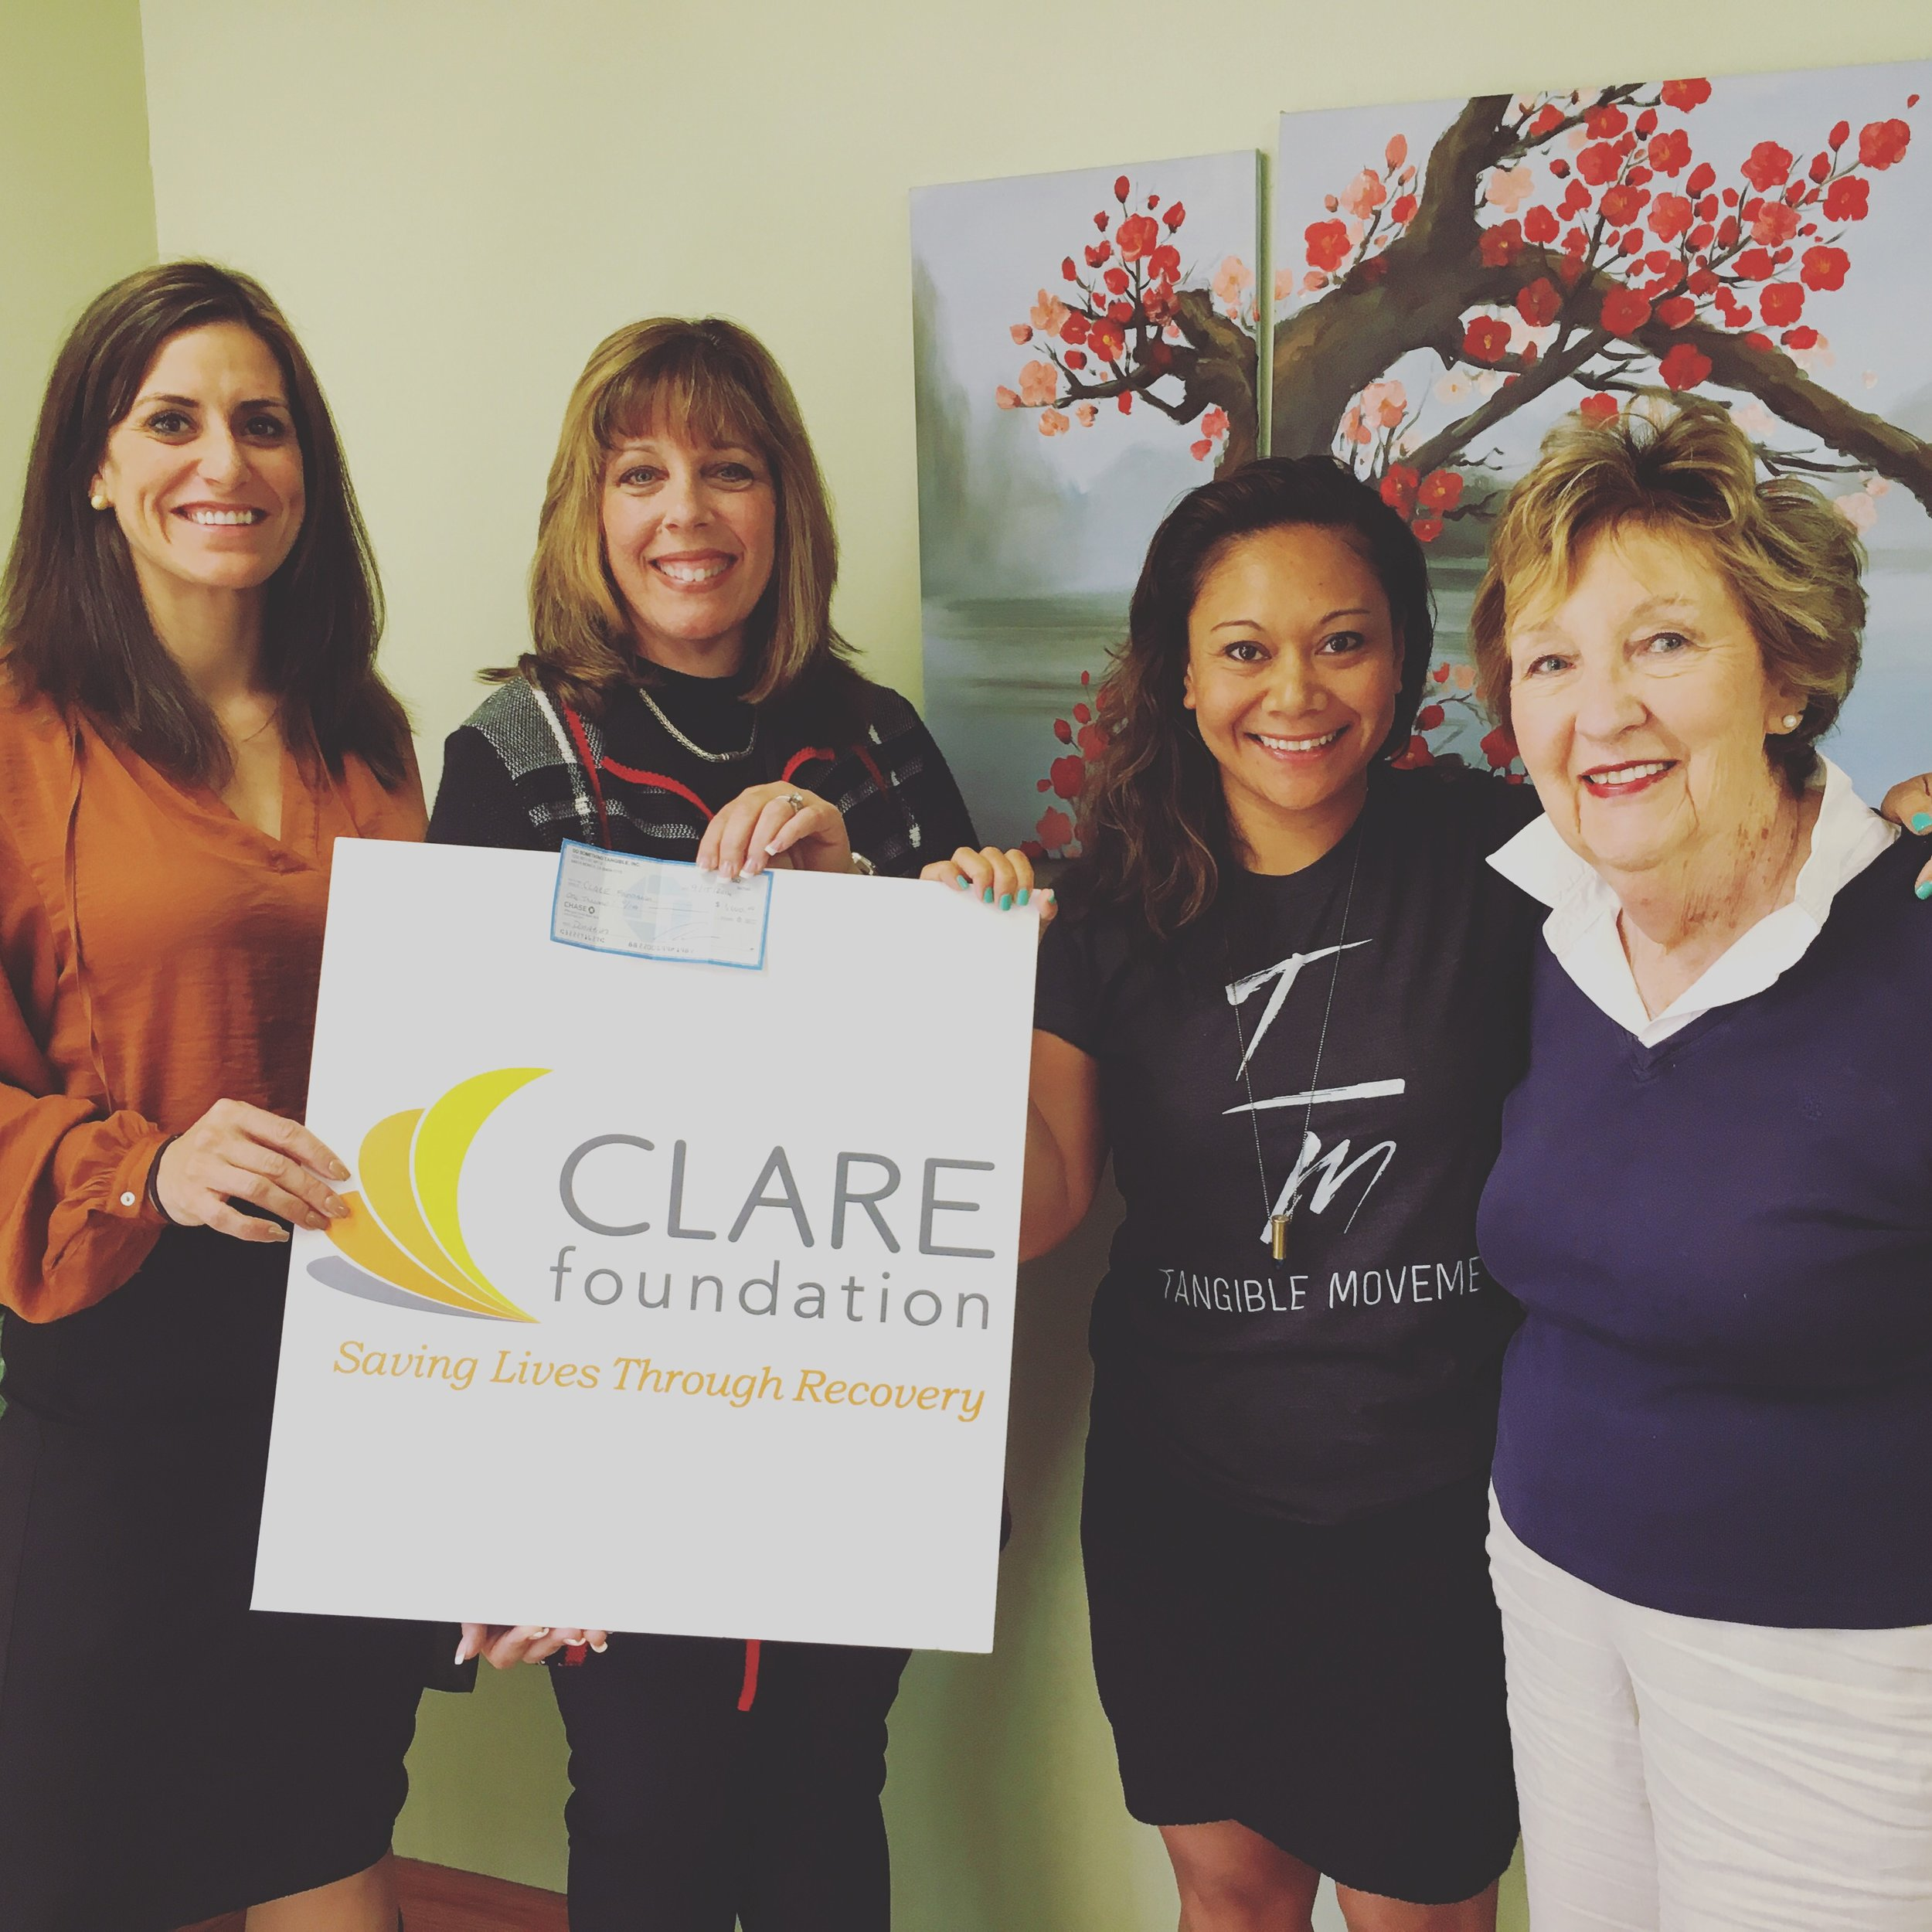 Clare Foundation & Tangible Movement